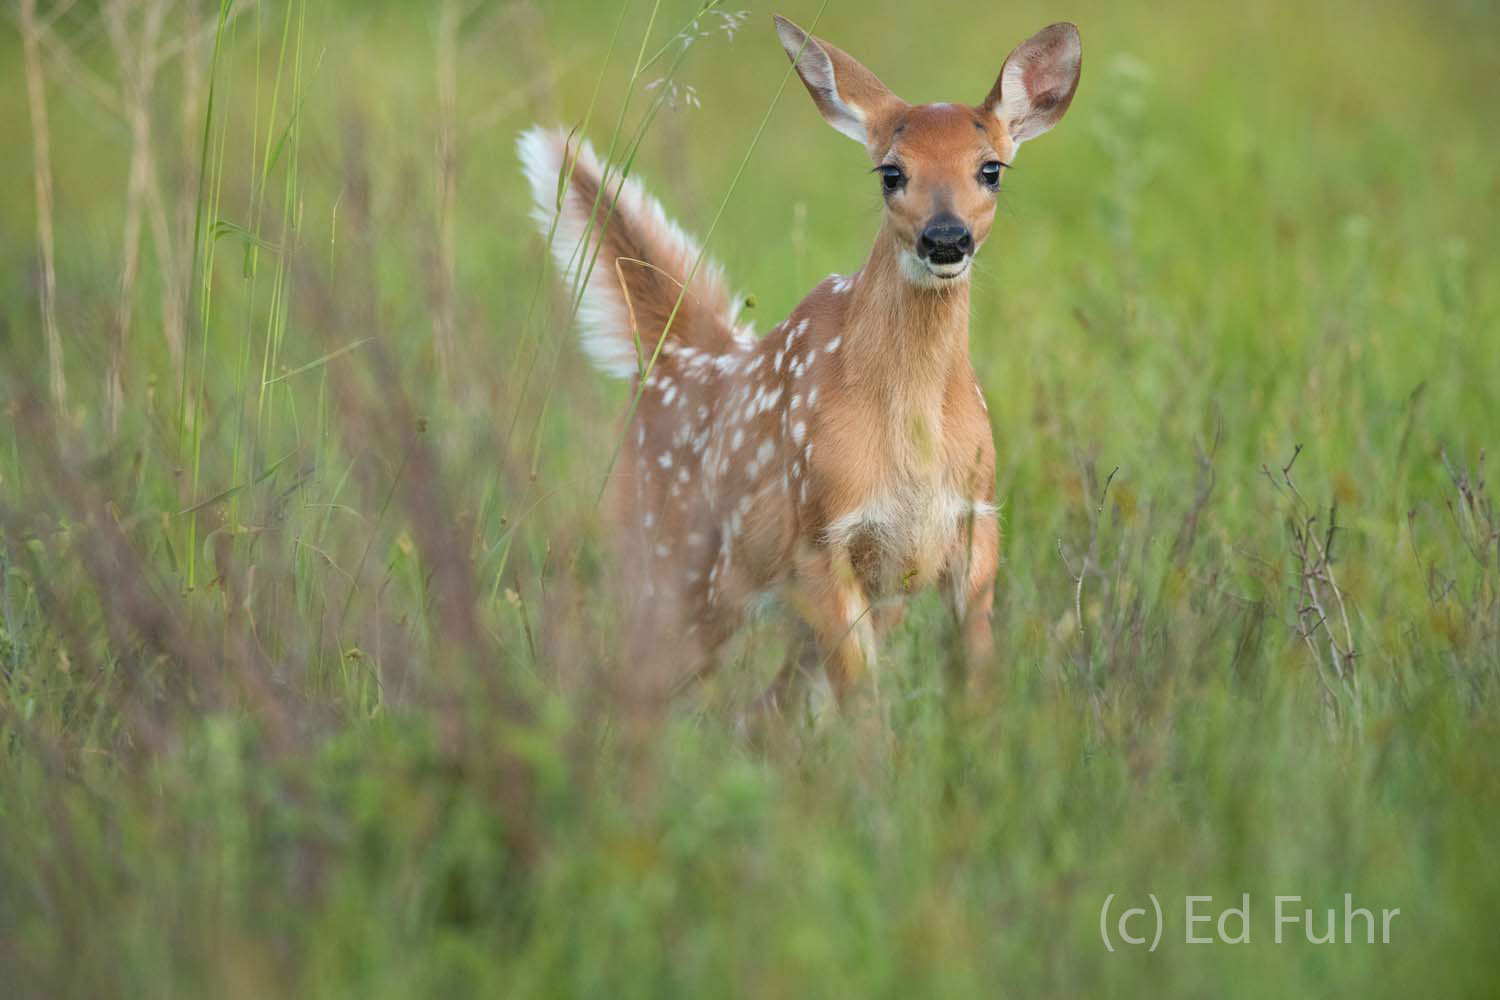 A young fawn stops between jumps to stare with inquisitive eyes before returning to his play.